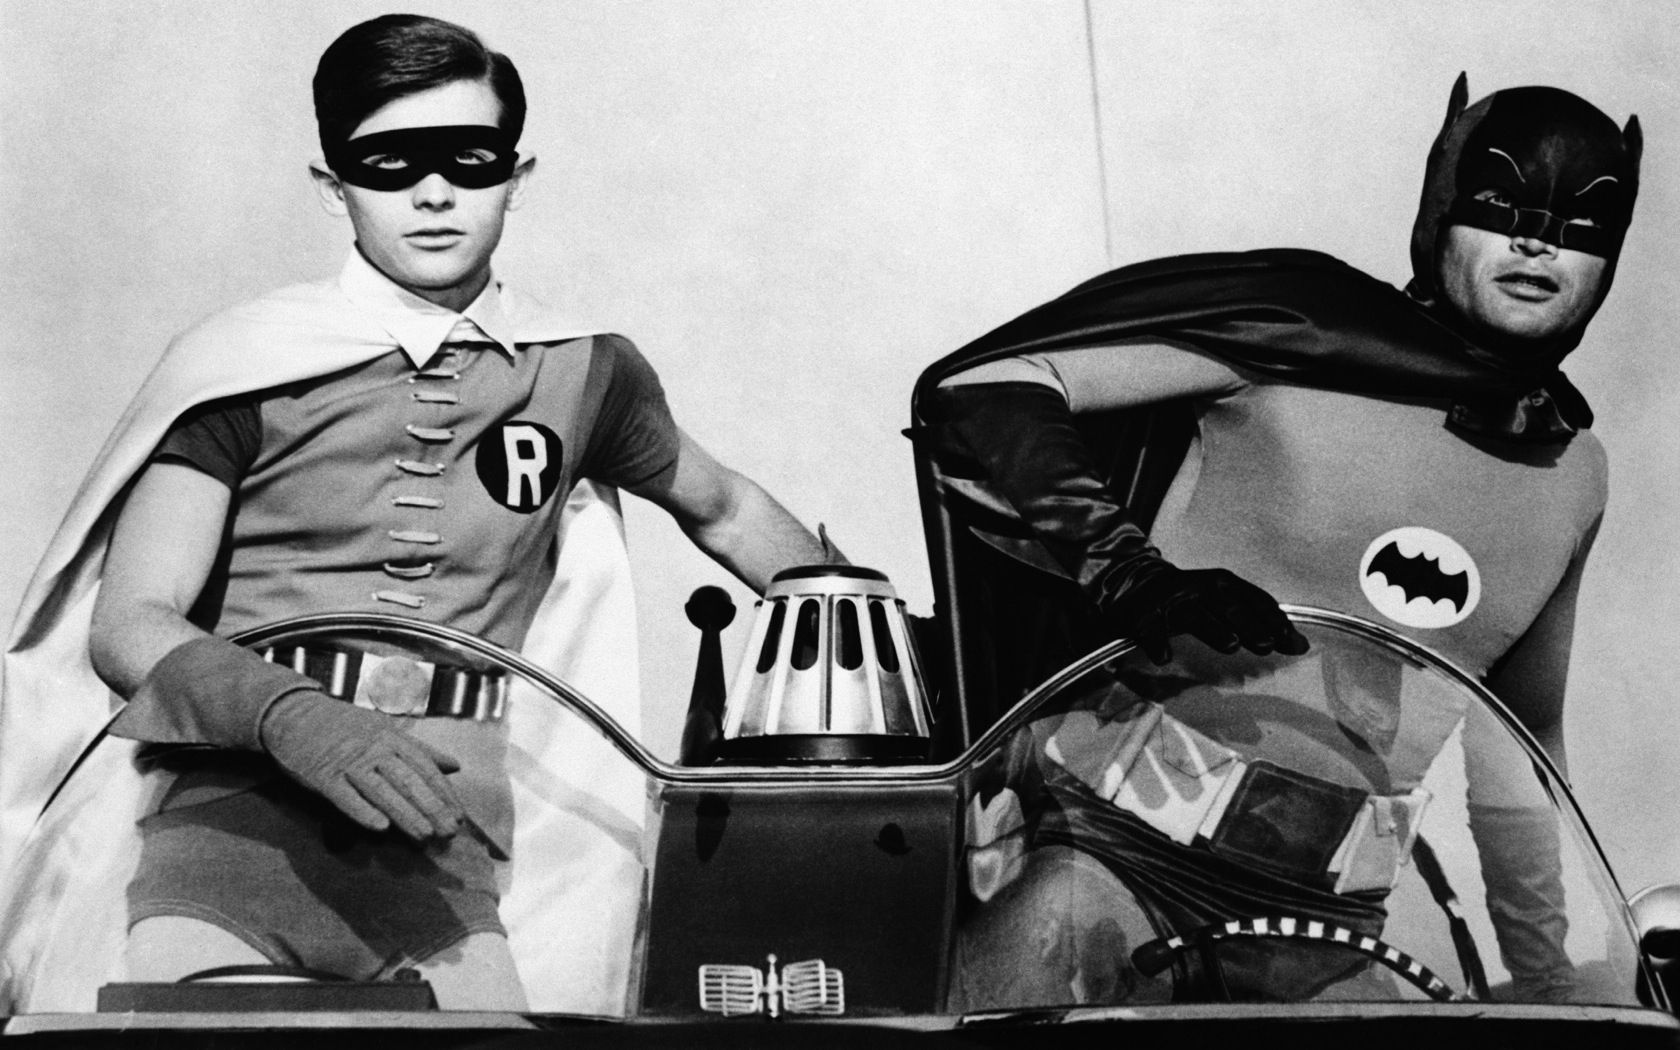 Adam west and burt ward as batman and robin in the 1960s for Black and white shows